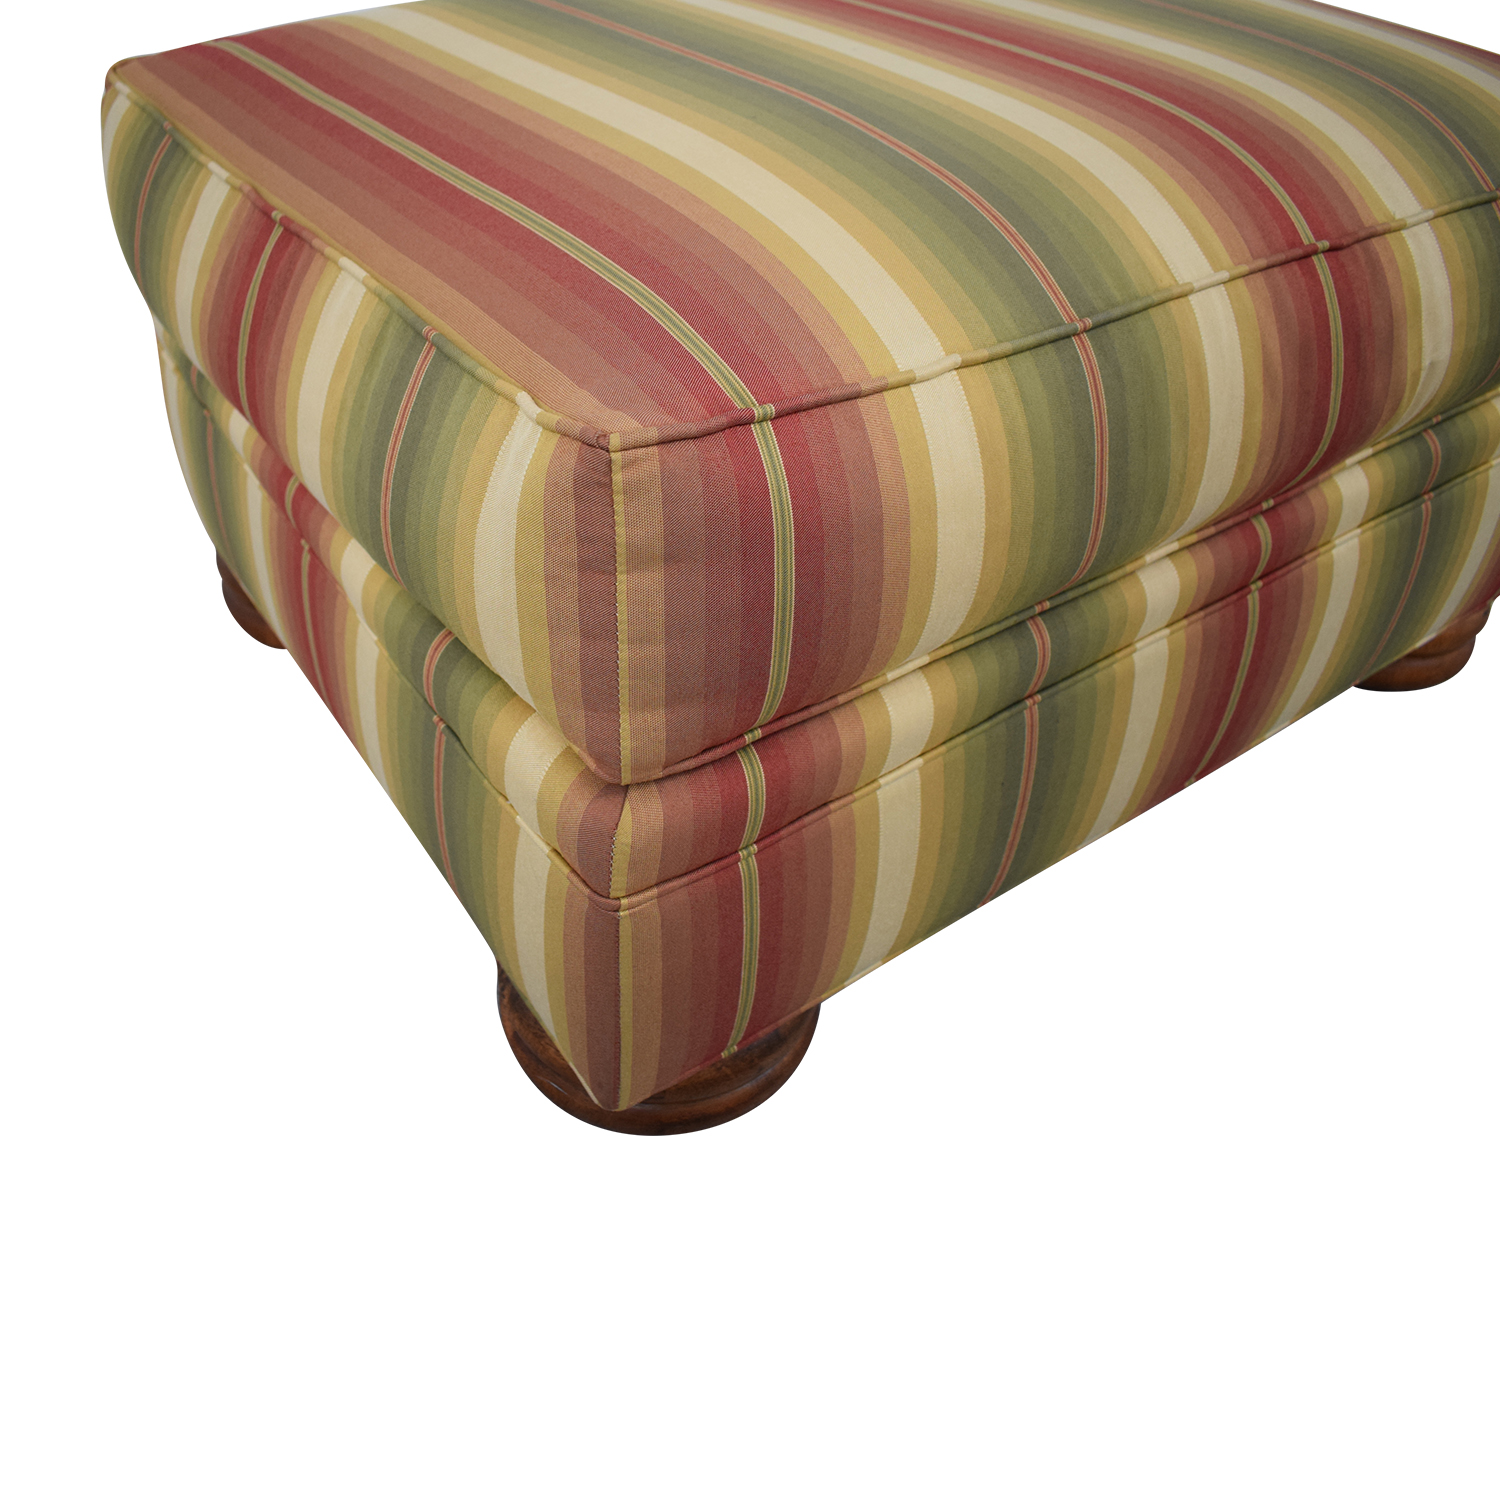 Thomasville Striped Ottoman / Ottomans